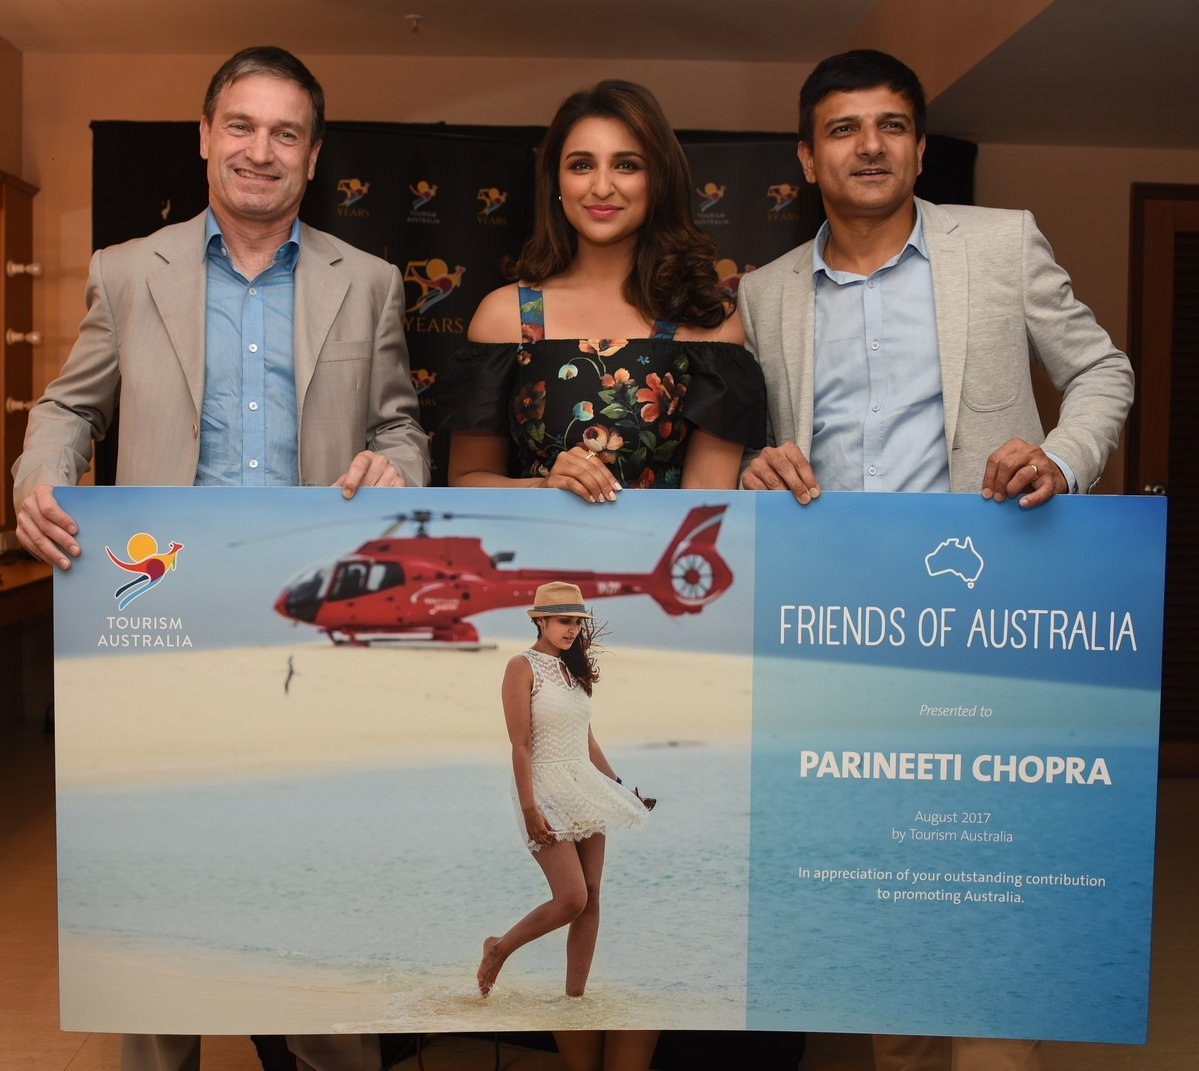 Special Event With Parineeti Chopra For Tourism Australia